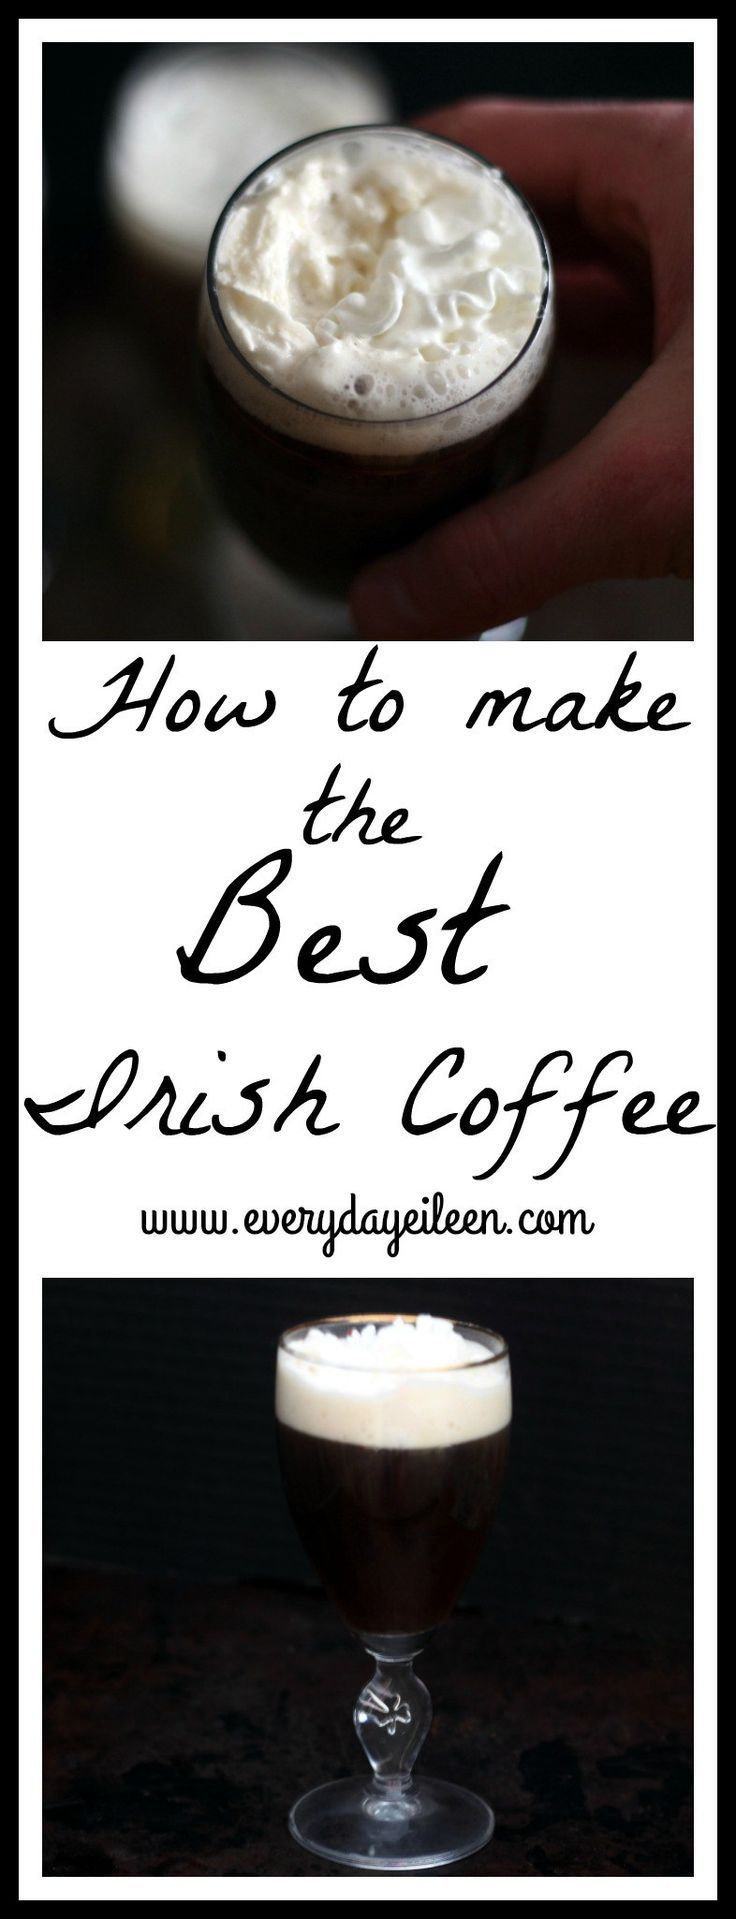 Get the easy instructions to make the best Irish Coffee at home! Your friends and family will request this one often! Perfect on Saint Patrick's Day and any celebration!